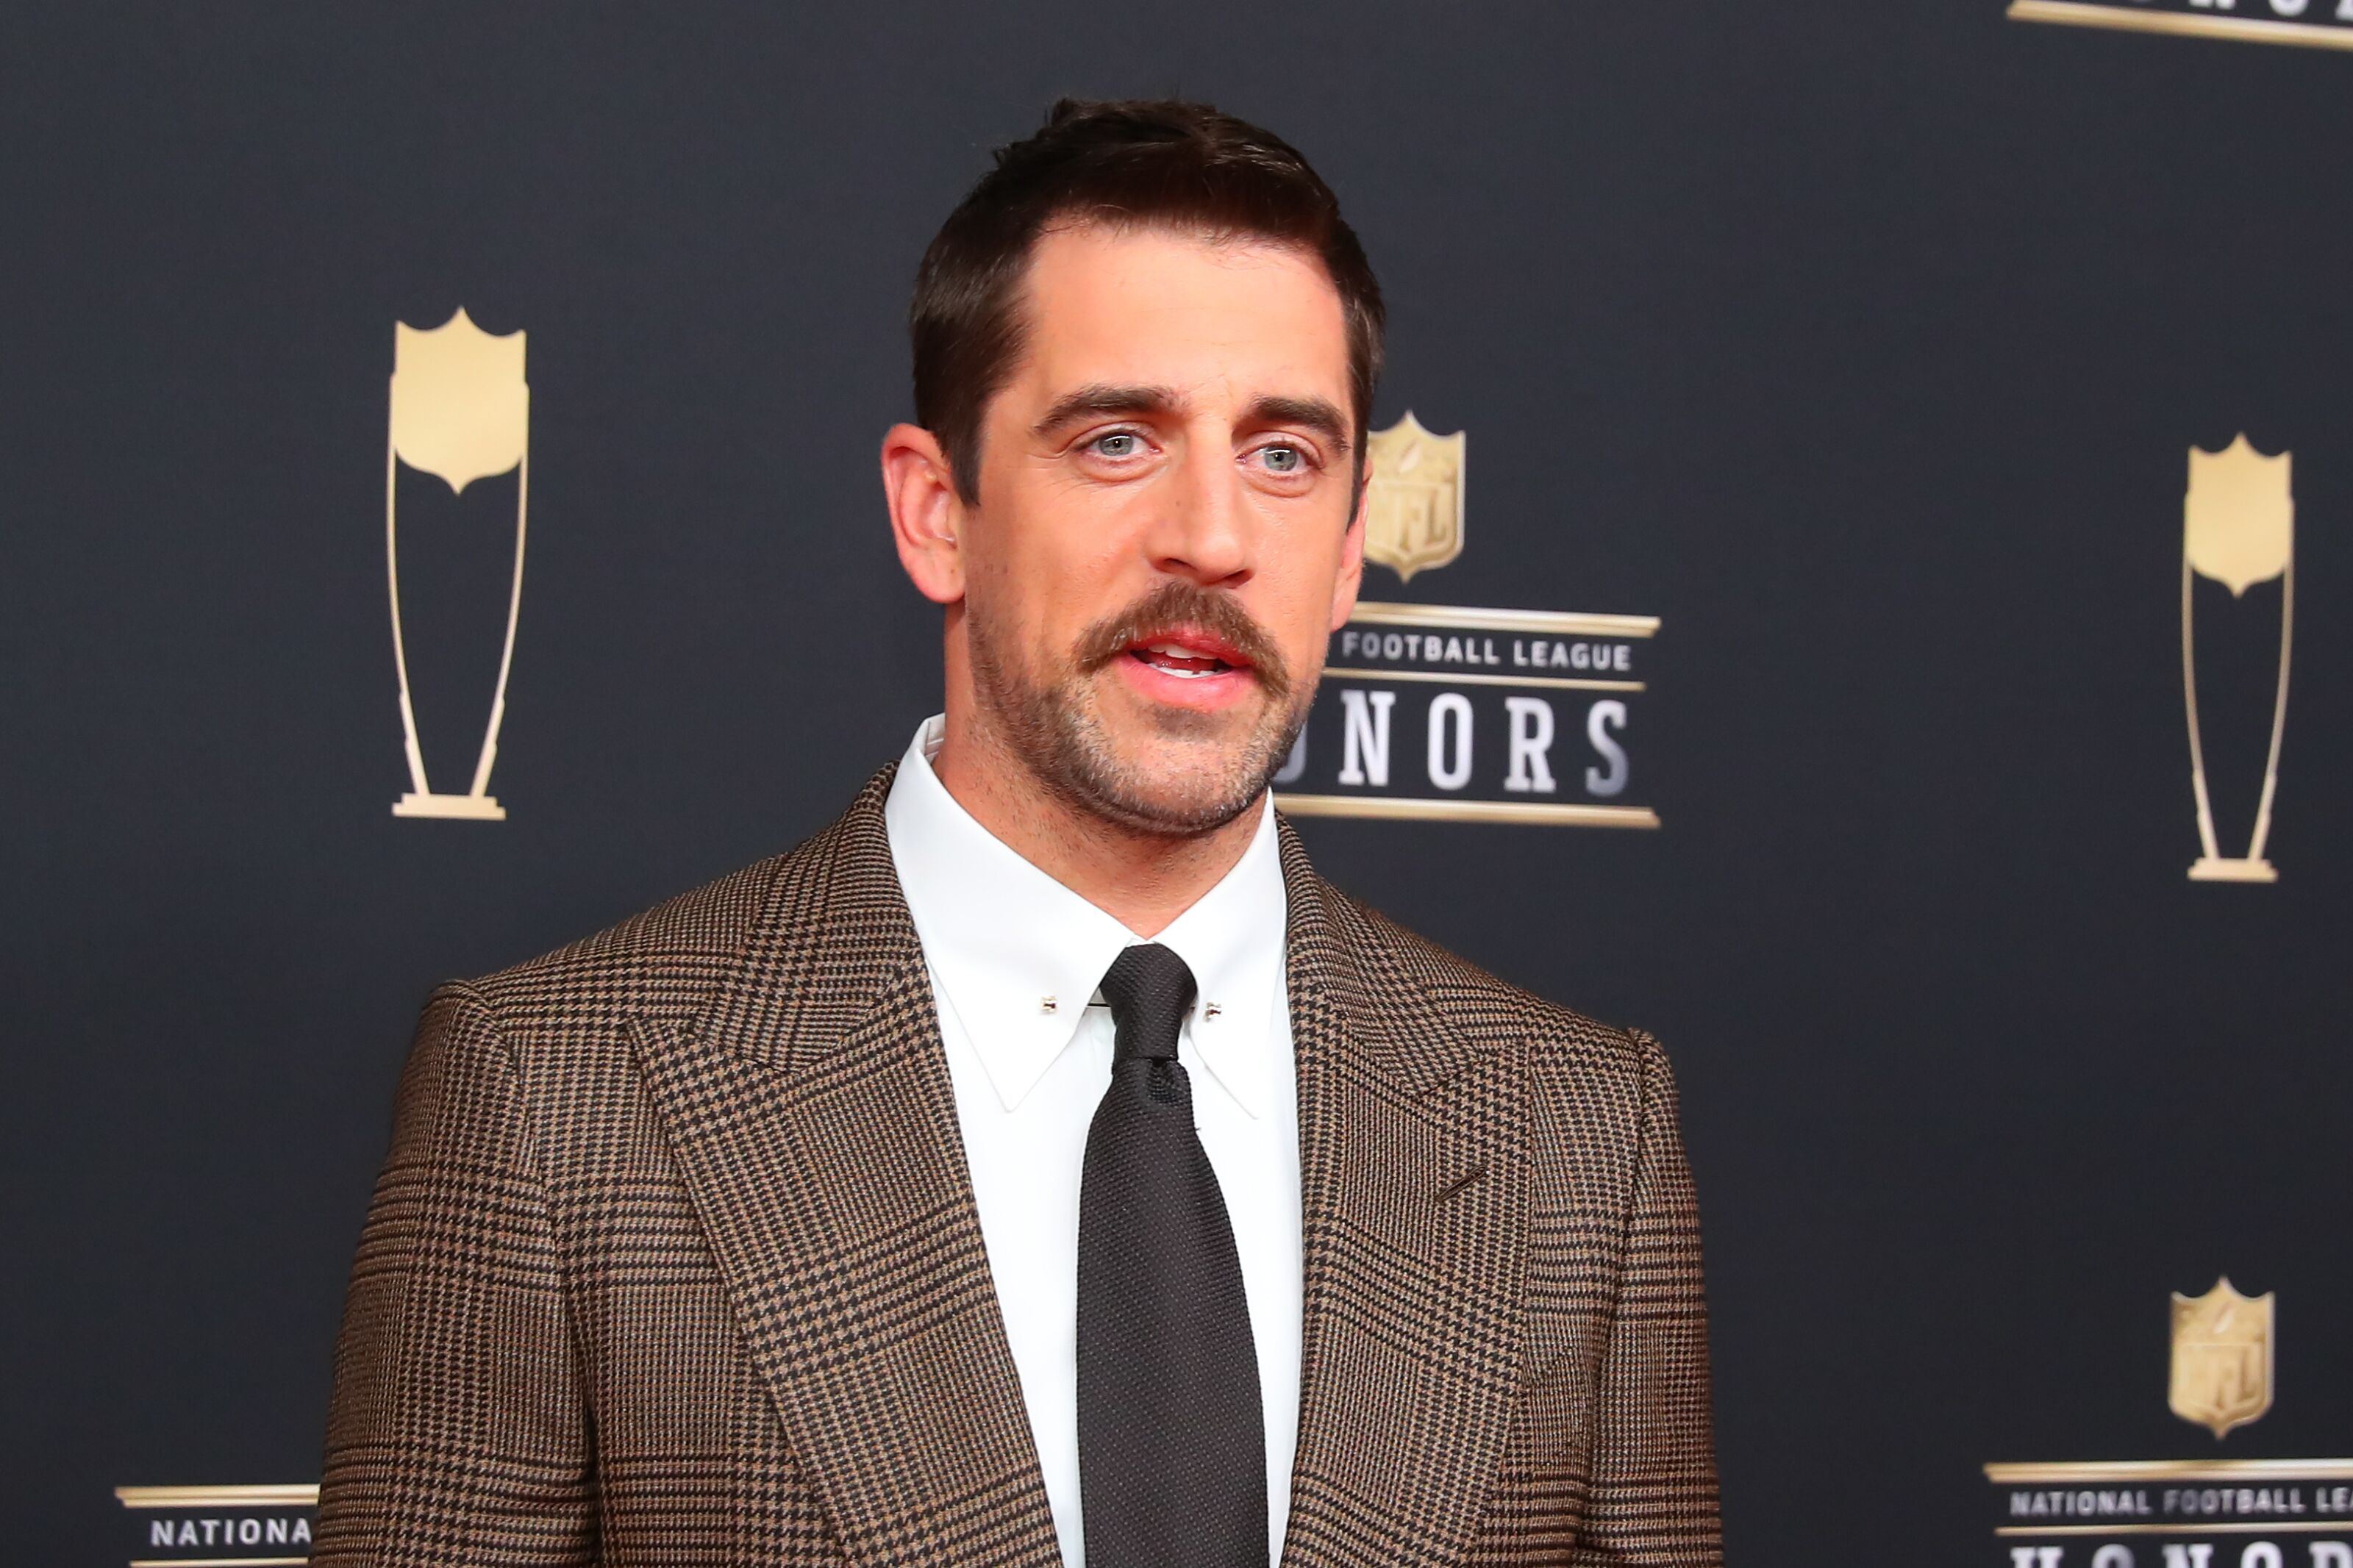 Aaron Rodgers thrashes Game of Thrones finale